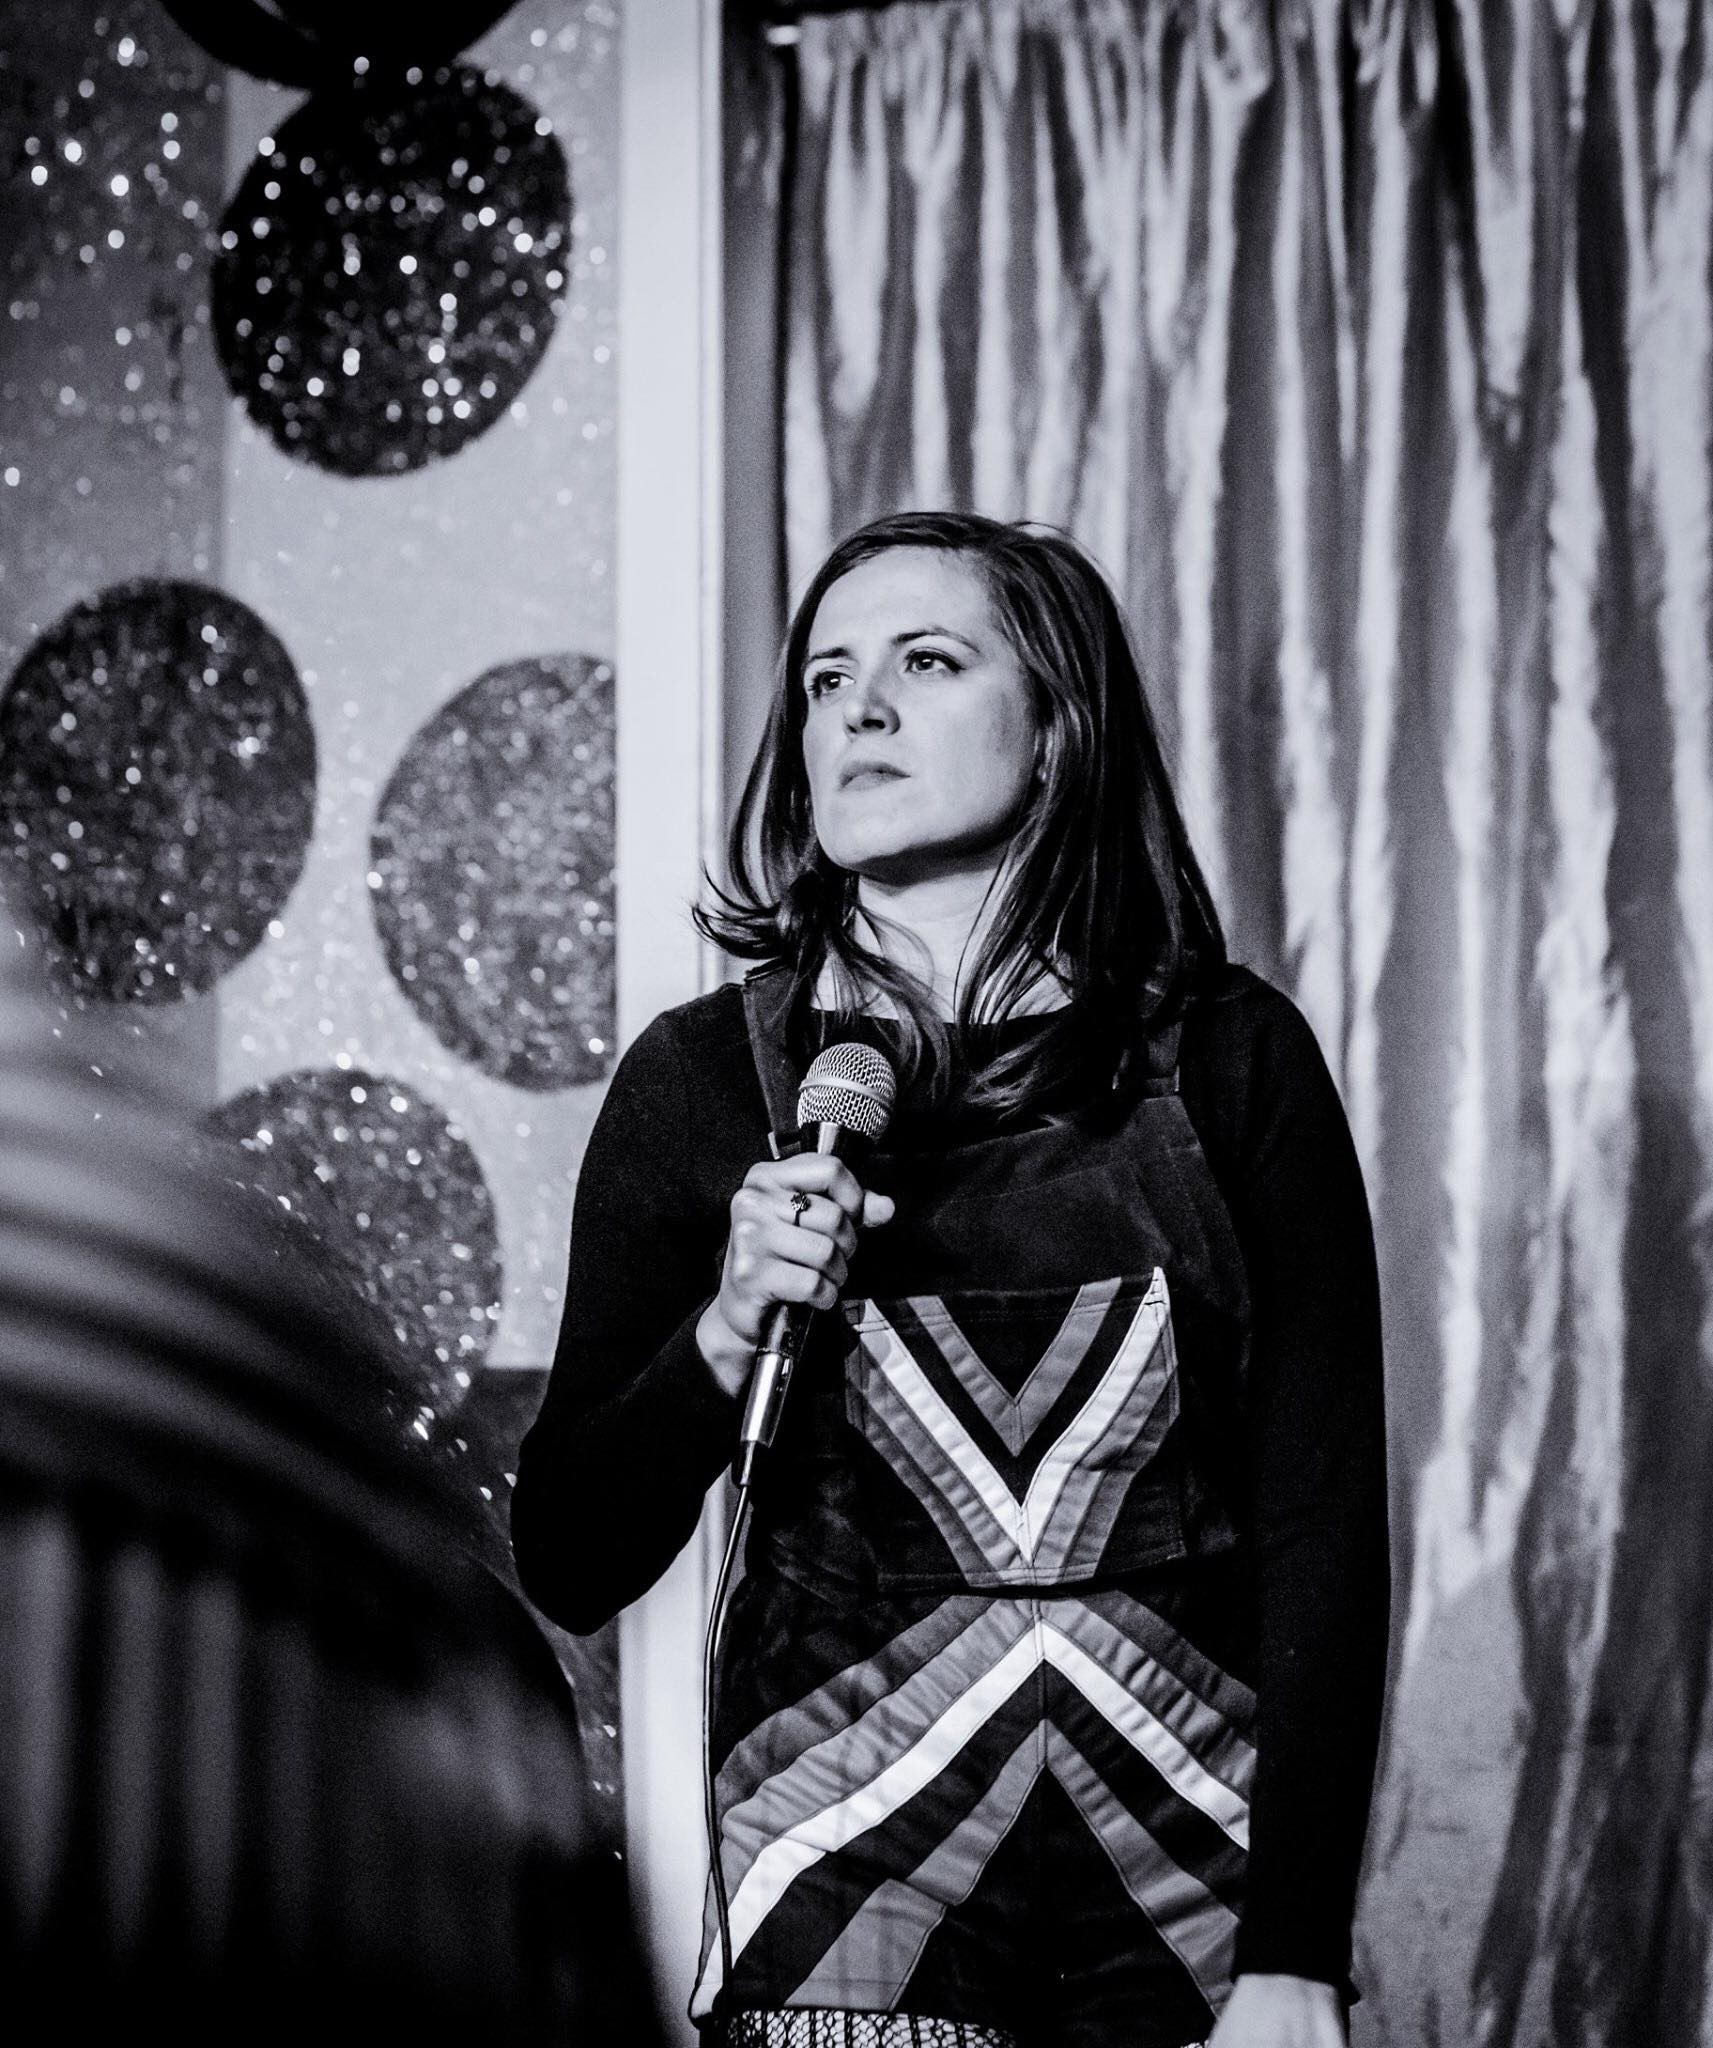 Reflective standup photo by Sarah Larson taken at Tuxedo Cat Comedy in Chicago